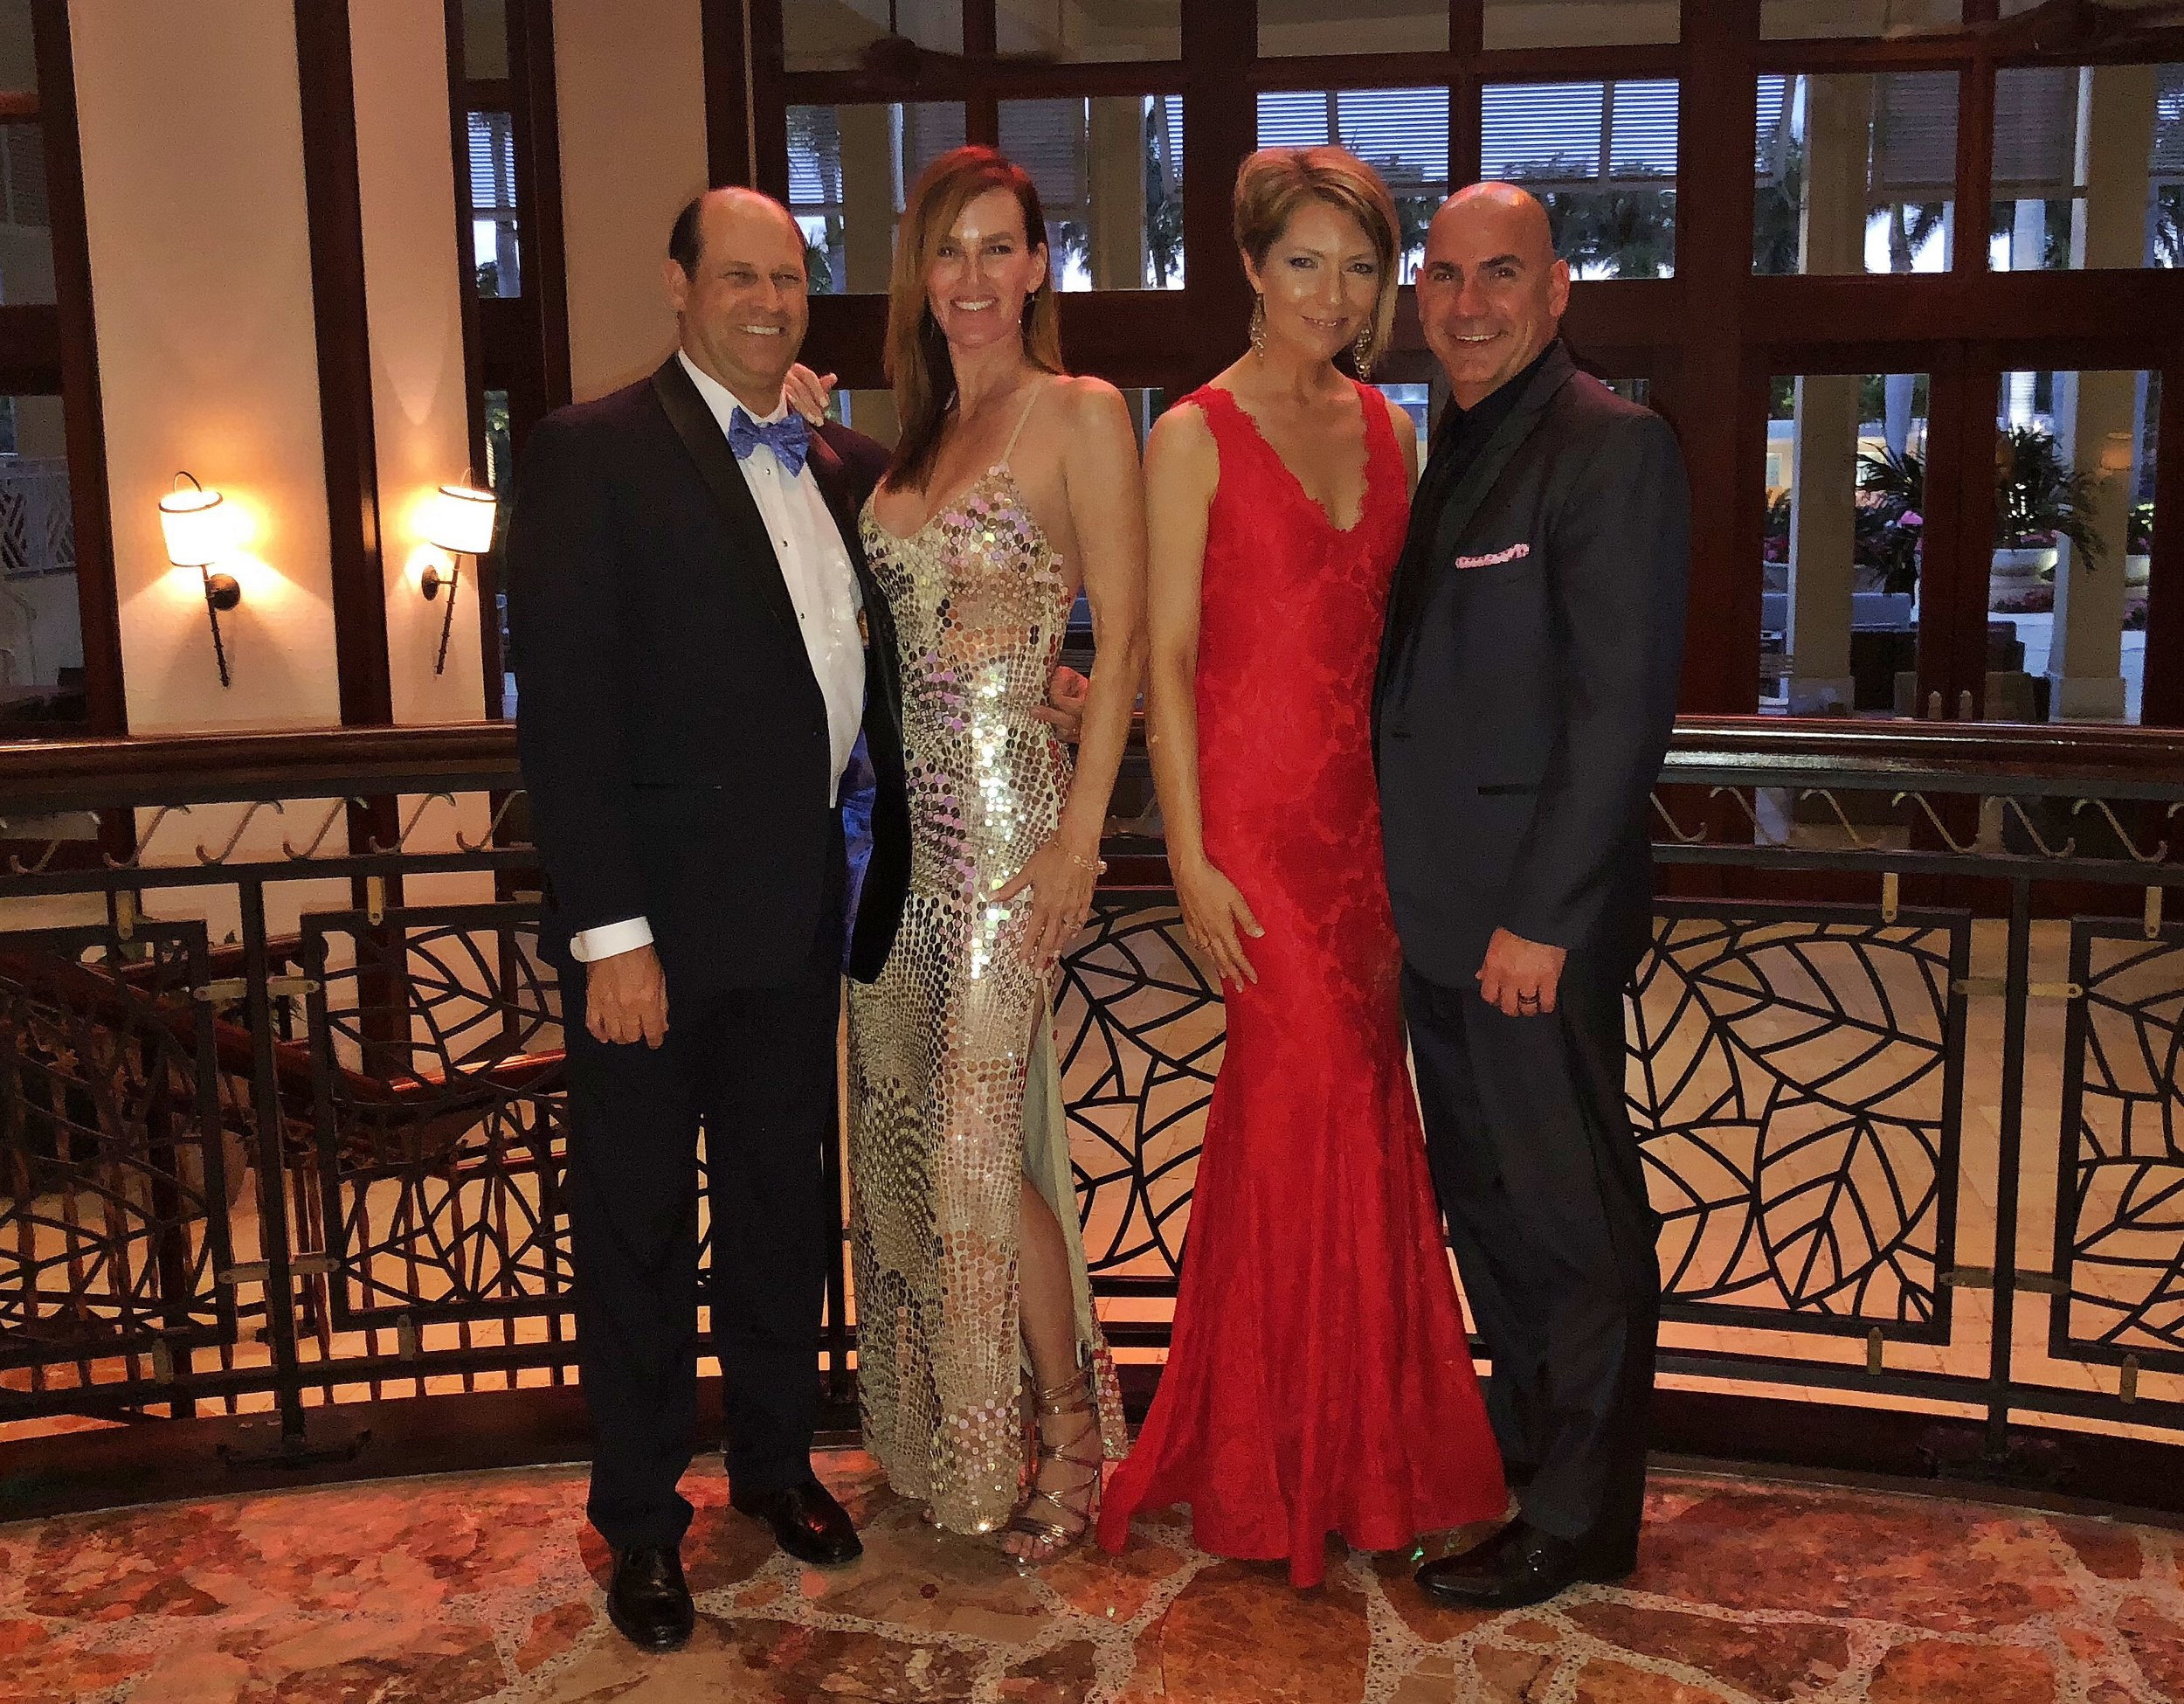 Greg and Samantha Campbell, Erica and Ed Castner at the 2018 Ronald McDonald HOuse Storybook Ball fundraiser at Hyatt Regency Coconut Pointe in Estero, FL on February 17, 2018.